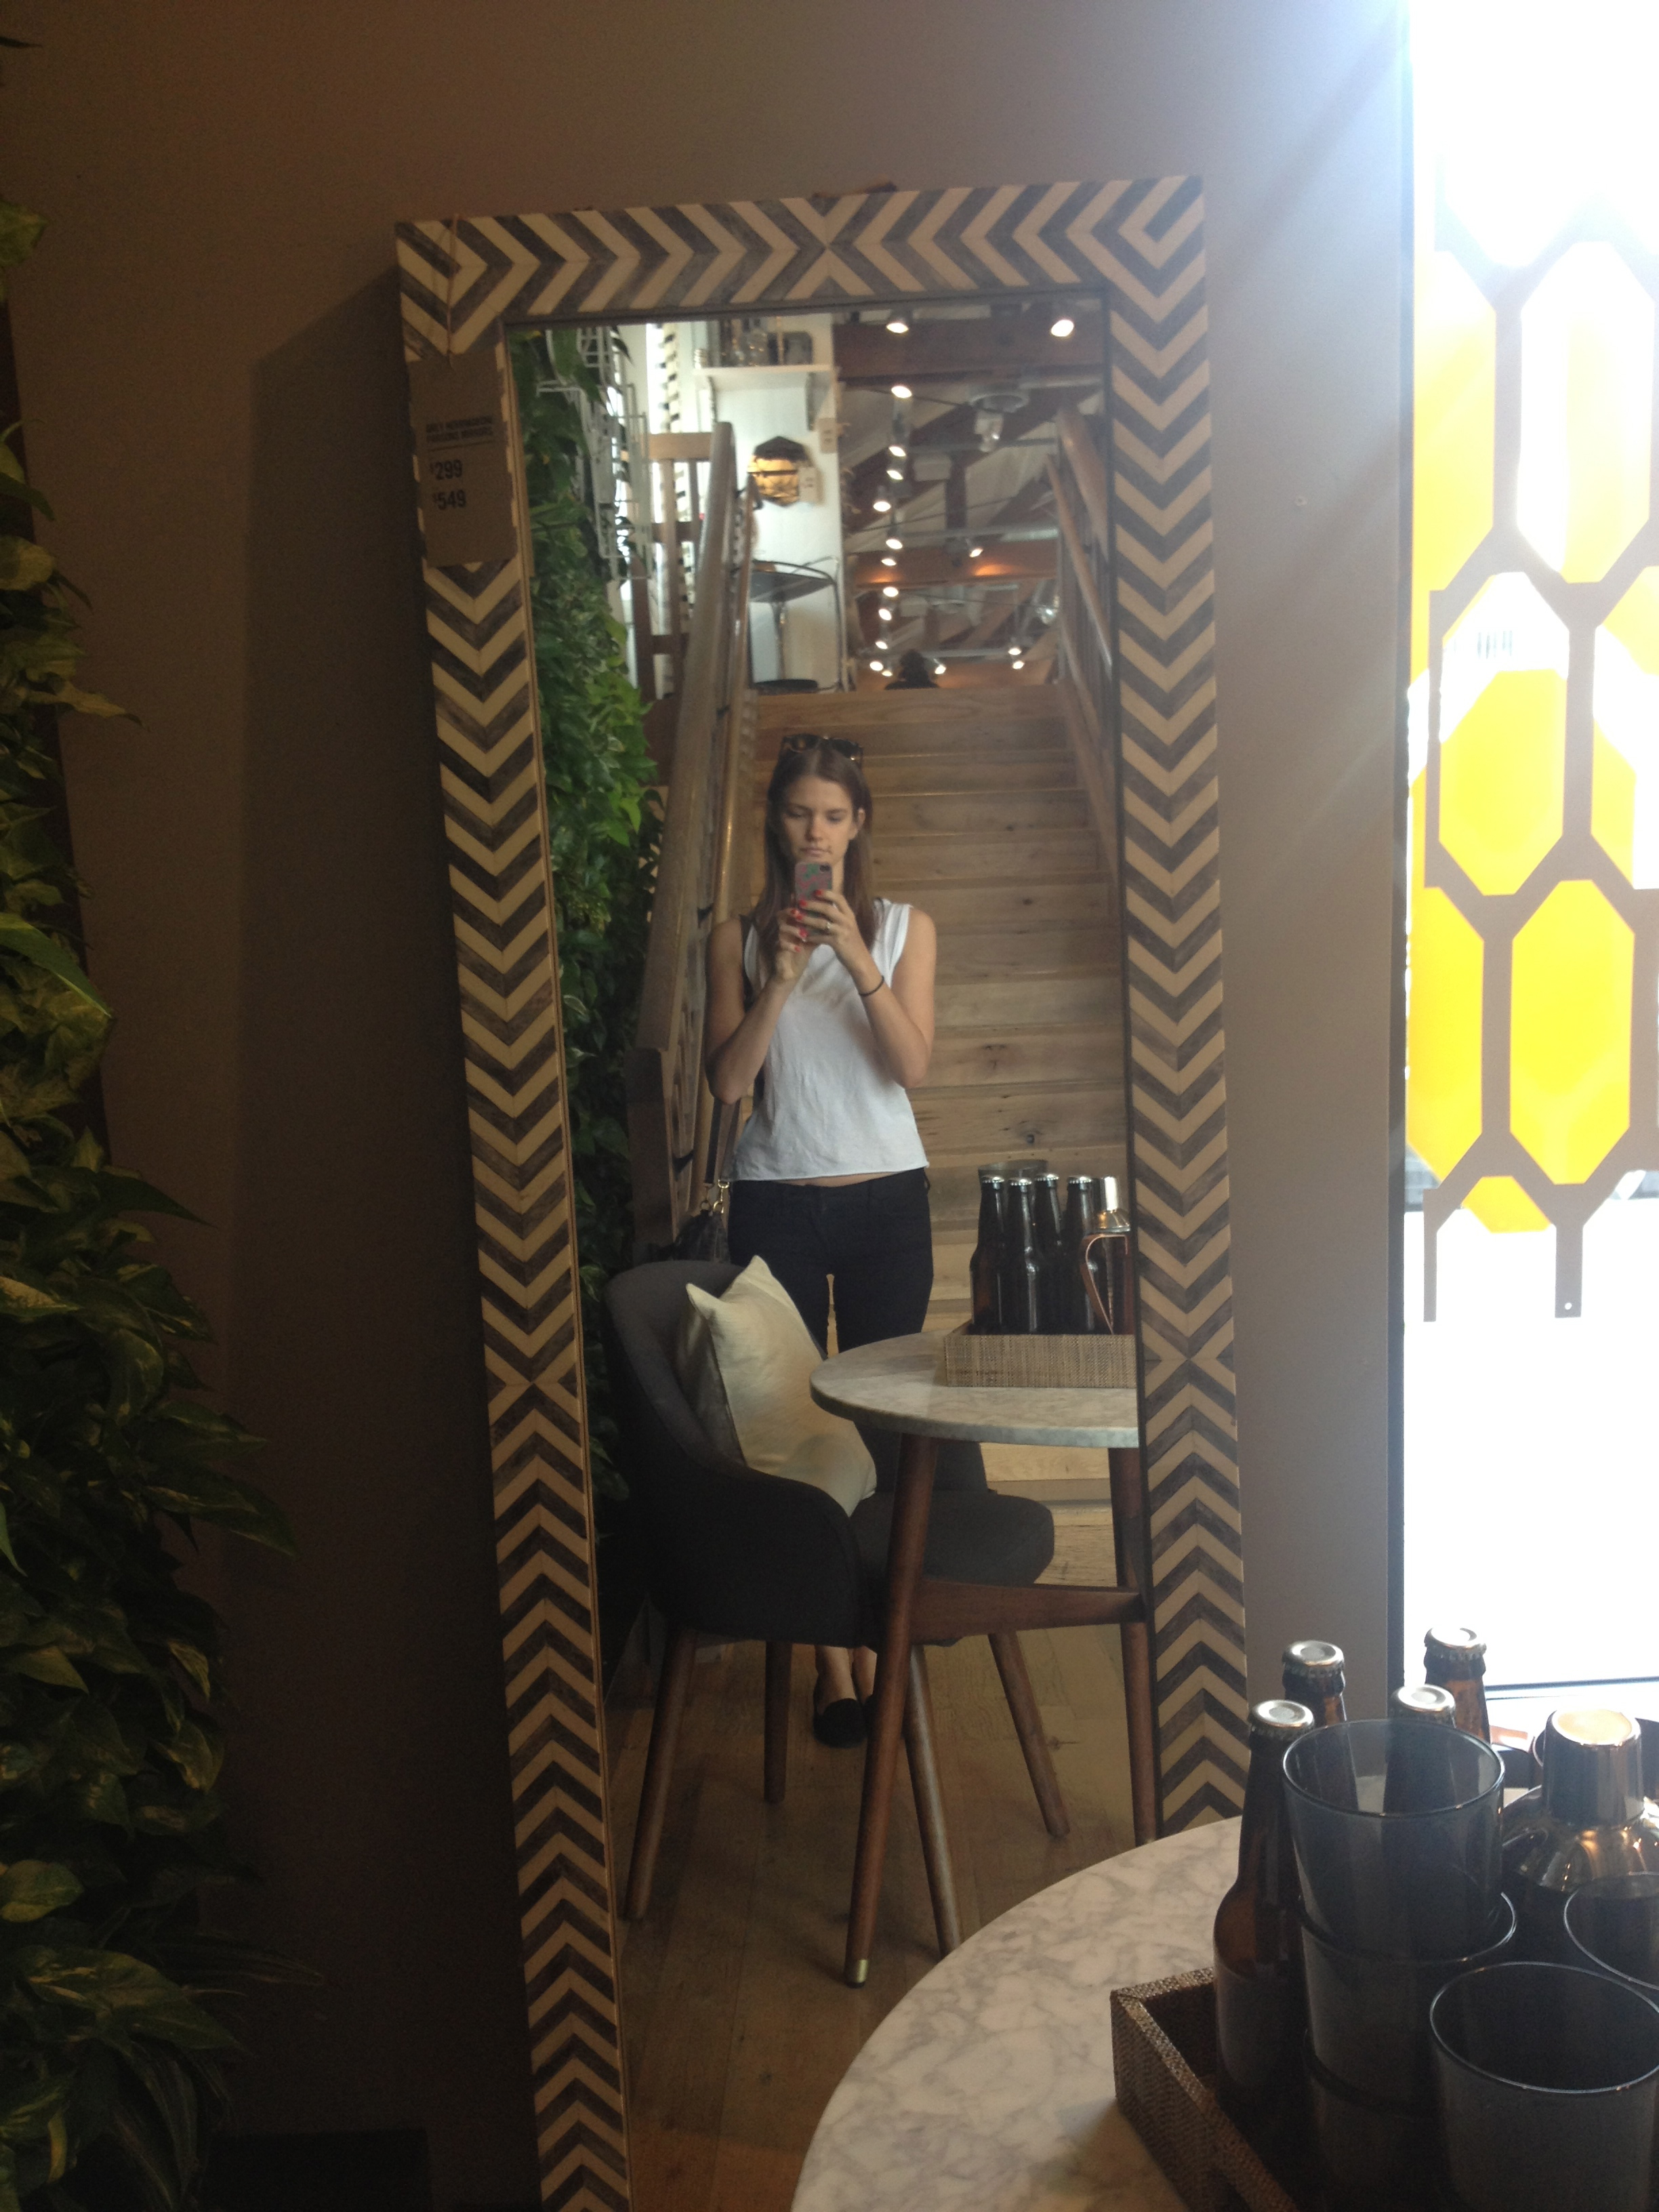 Old Love This Ky West Elm Mirror Roadside Rehab West Elm Mirror Hooks West Elm Mirrors Australia baby West Elm Mirrors